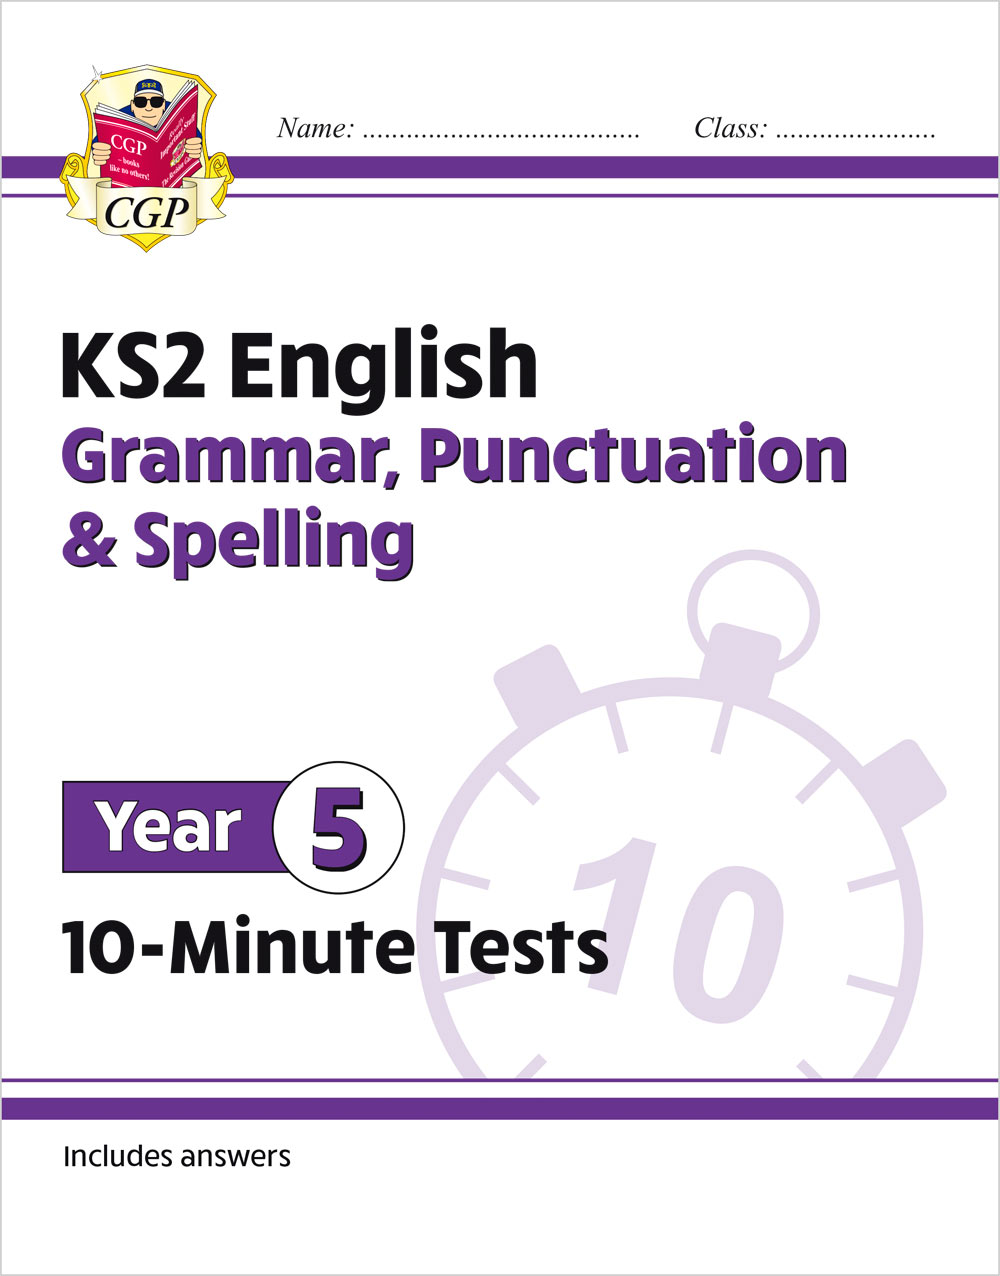 E5GXP21 - New KS2 English 10-Minute Tests: Grammar, Punctuation & Spelling - Year 5